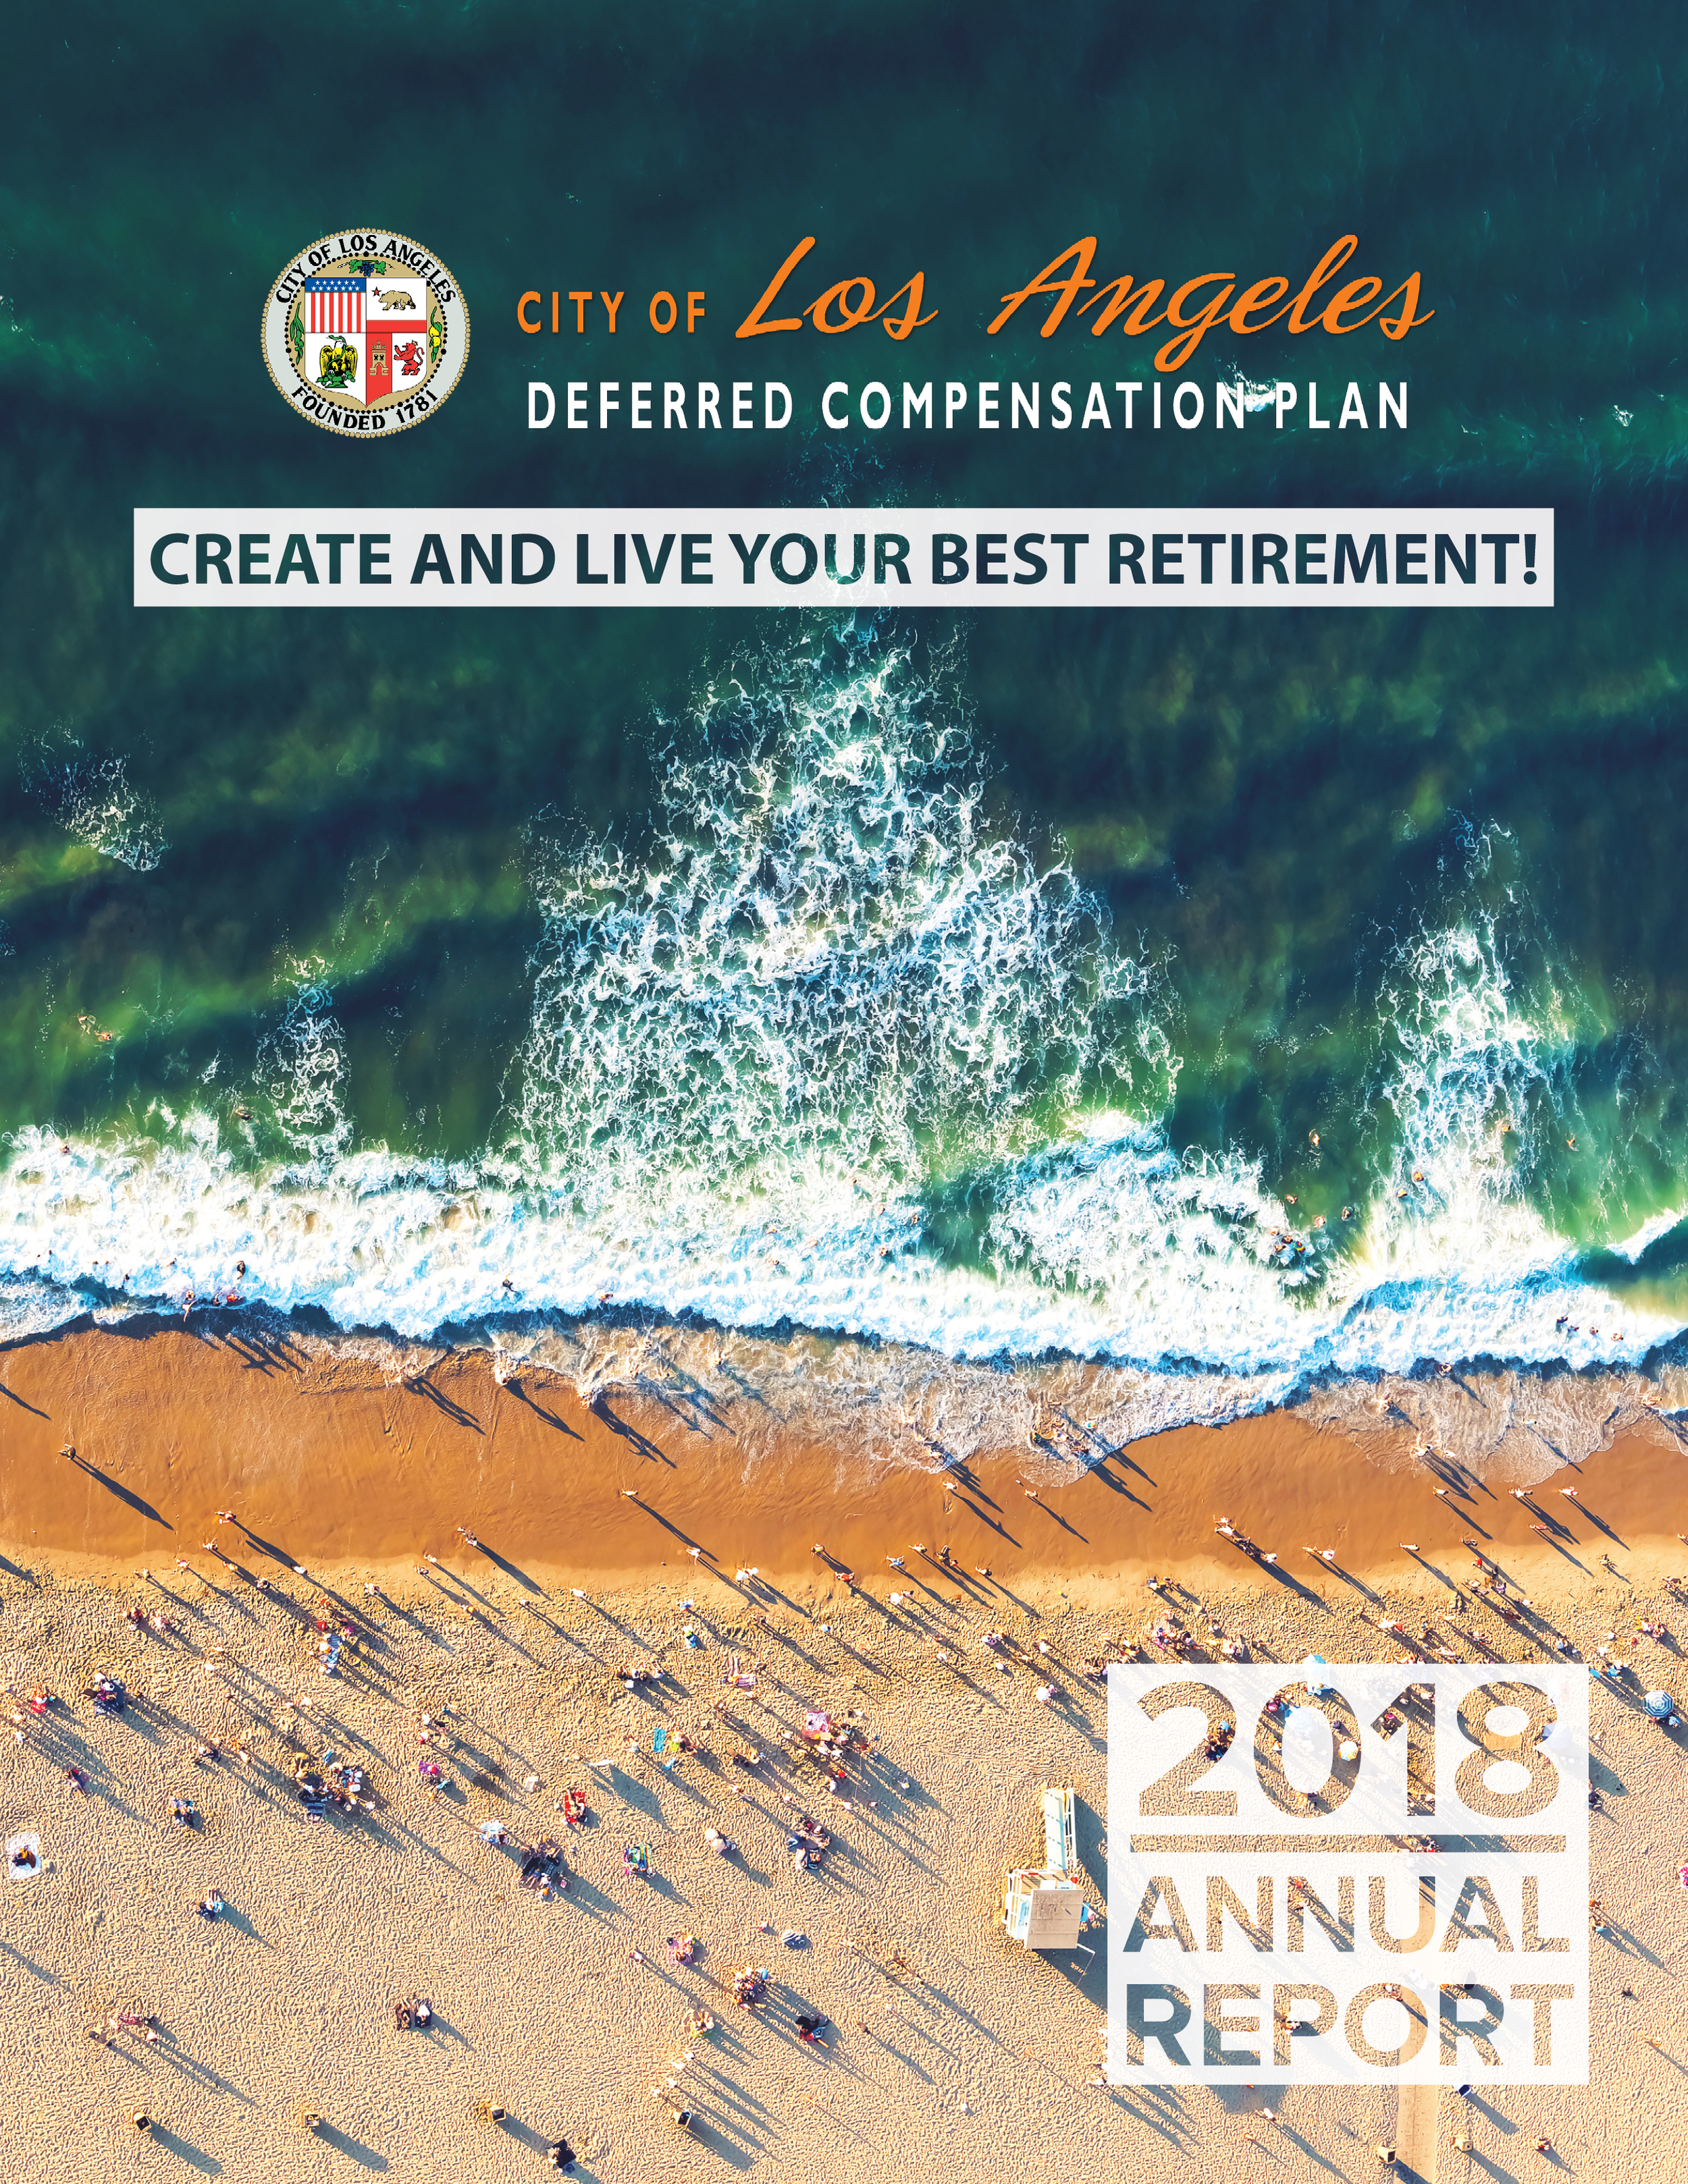 city of los angeles deferred compensation